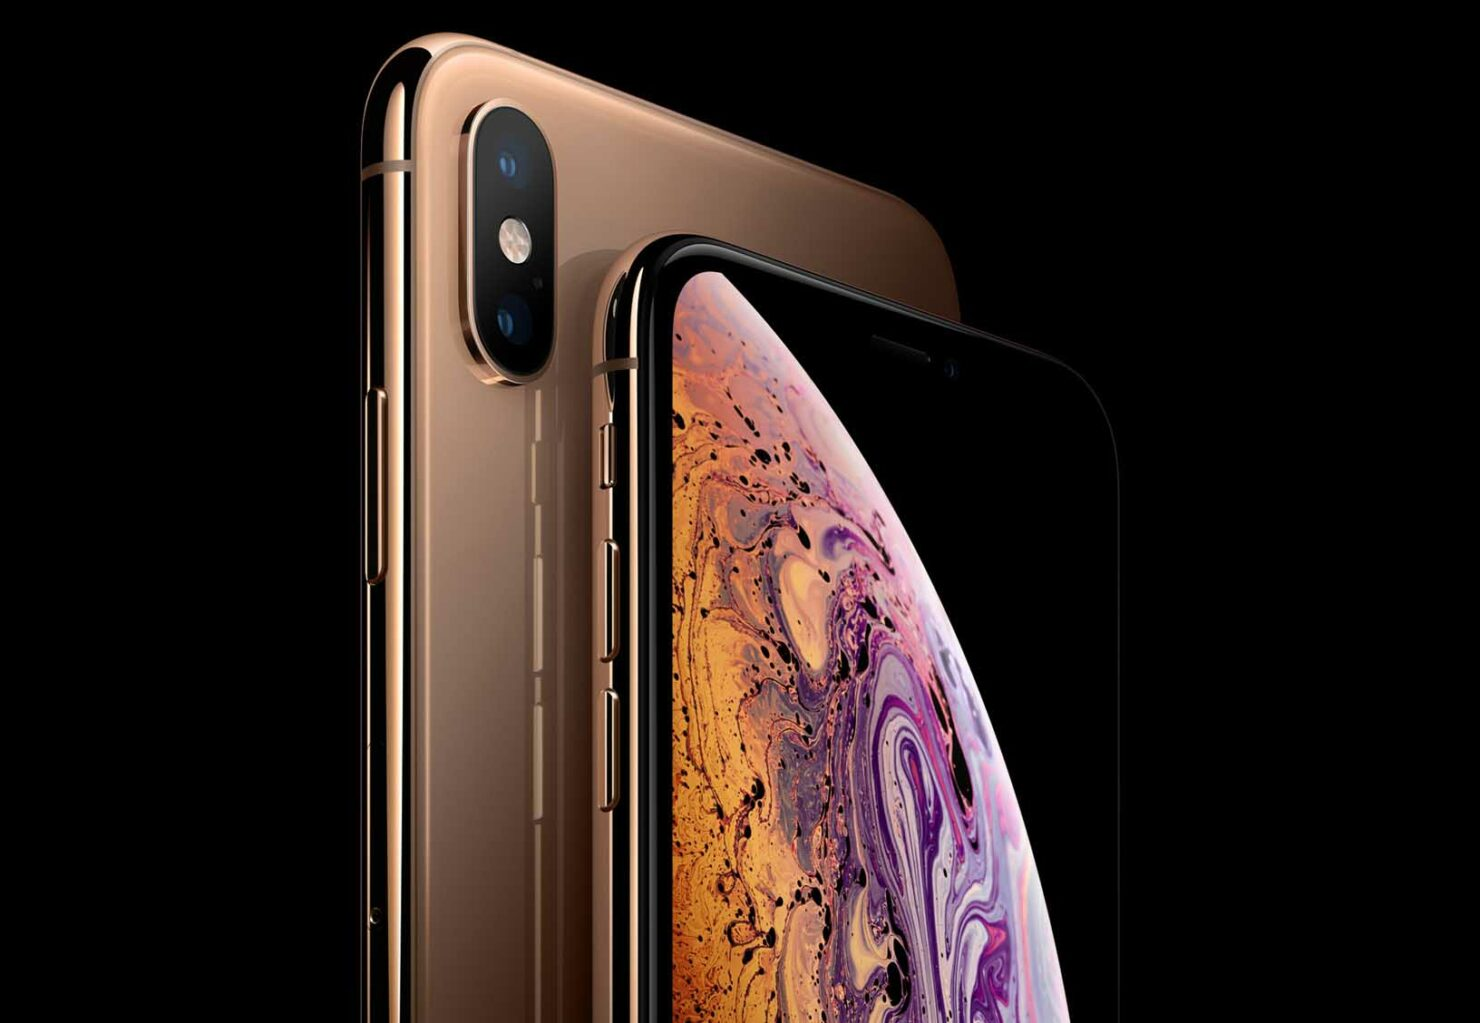 iPhone XS, iPhone XS Max Are $100 Cheaper at Apple Retail Outlets